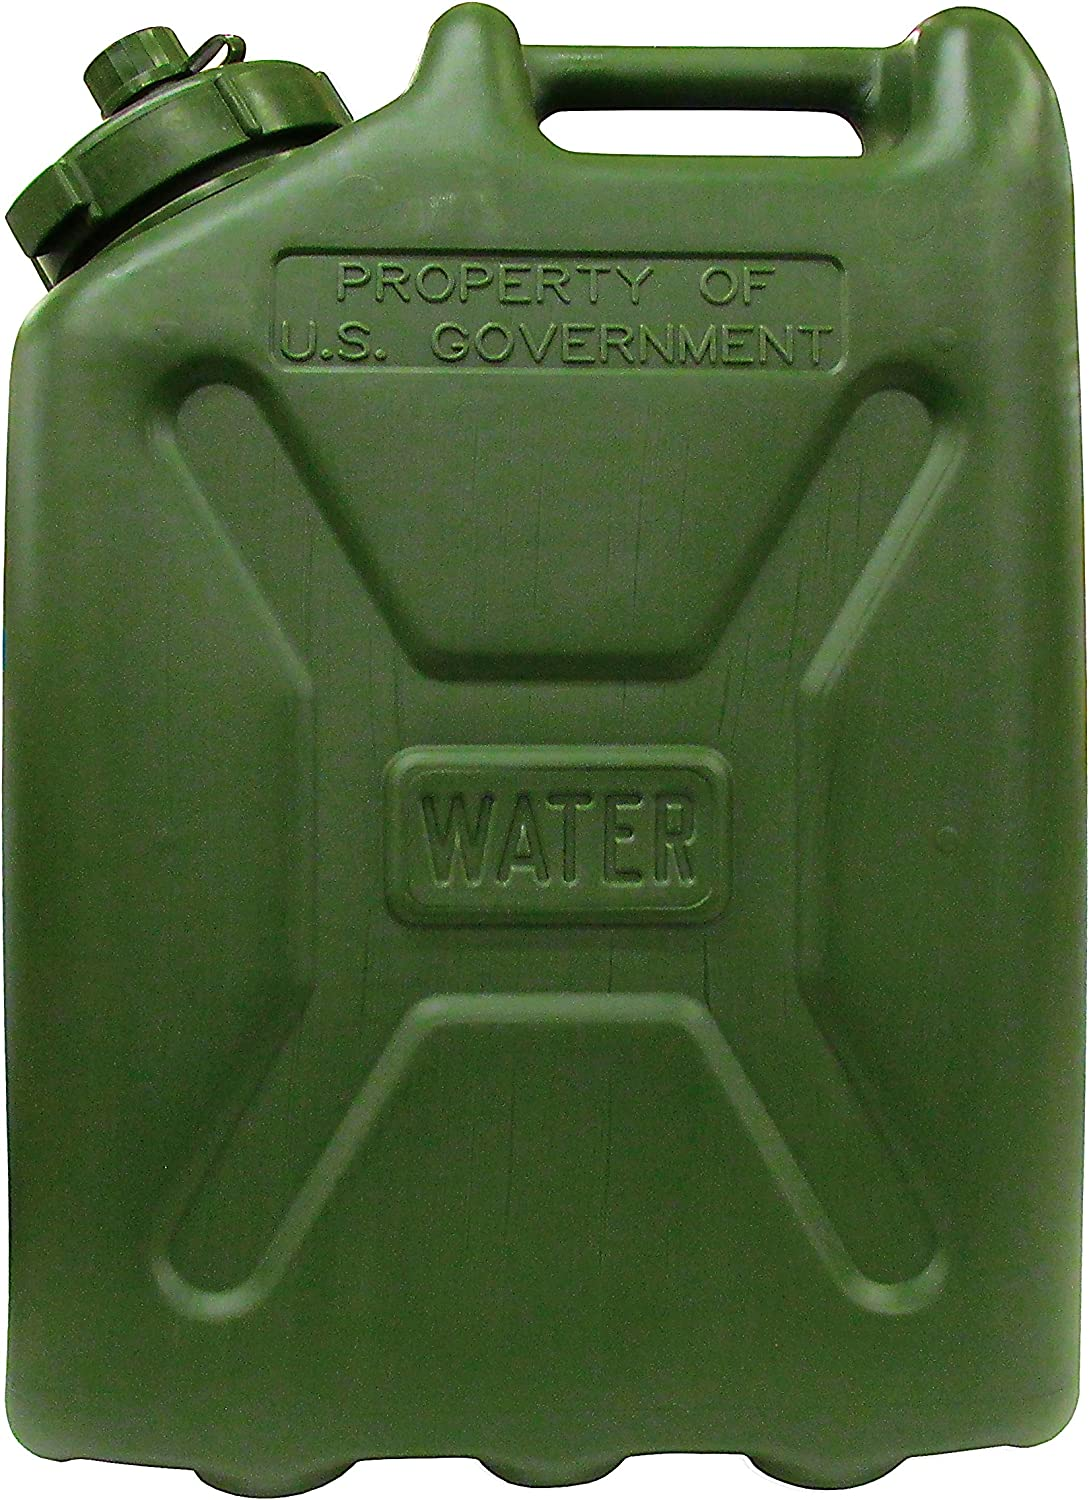 Ability One 5 Gallon Plastic Water Jugs - Forest Green